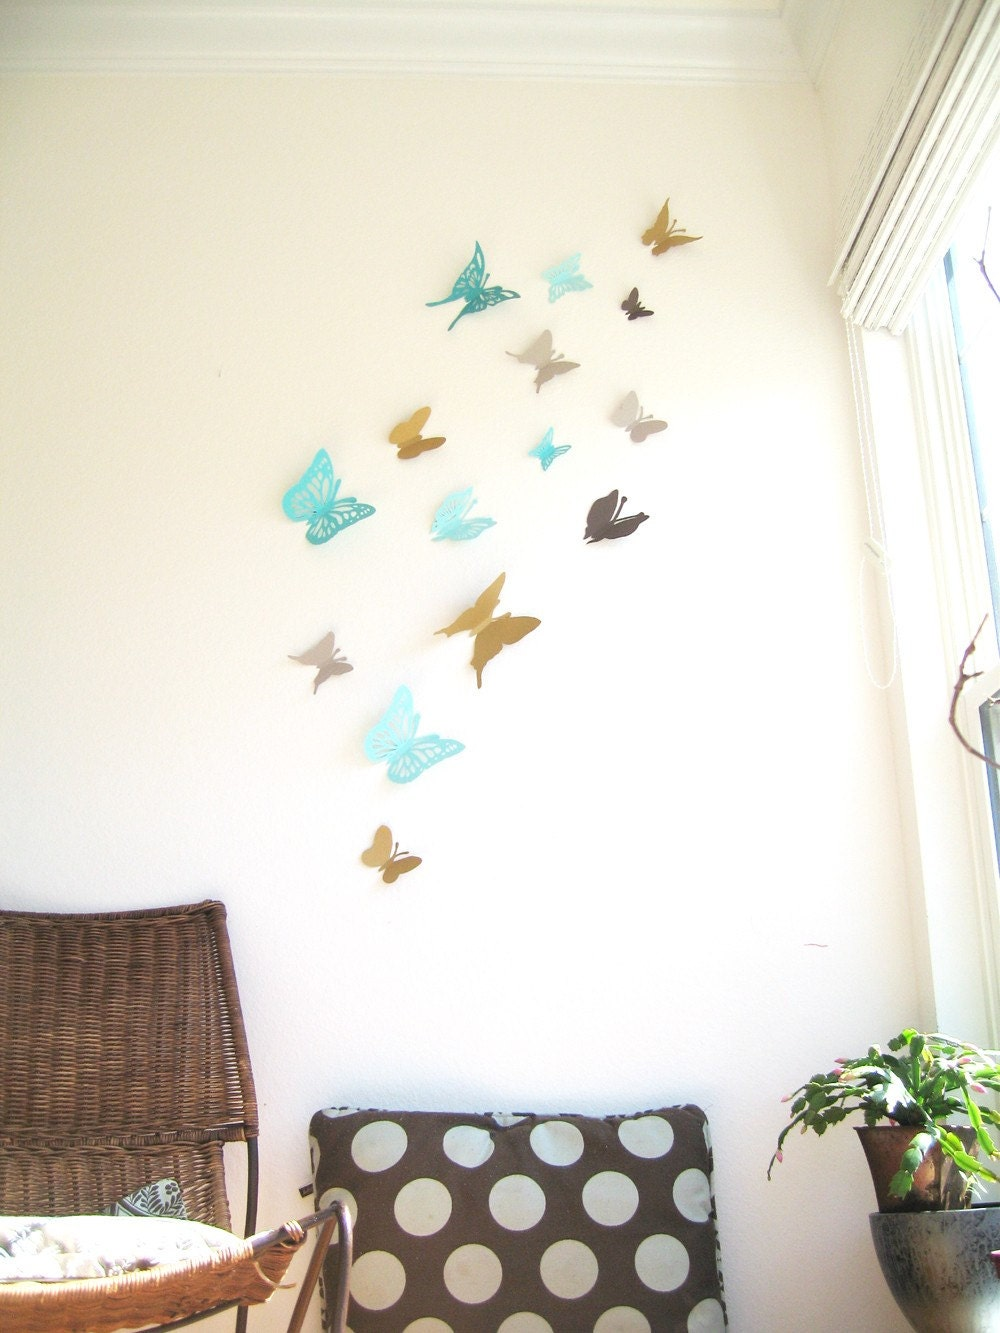 15 Butterflies, Aqua, Blue, Turquoise, Brown, Gray,Paper, Wall Decor, 3D, Nursery, Baby, Wedding Decor, Shower, Girls Room, Cardstock